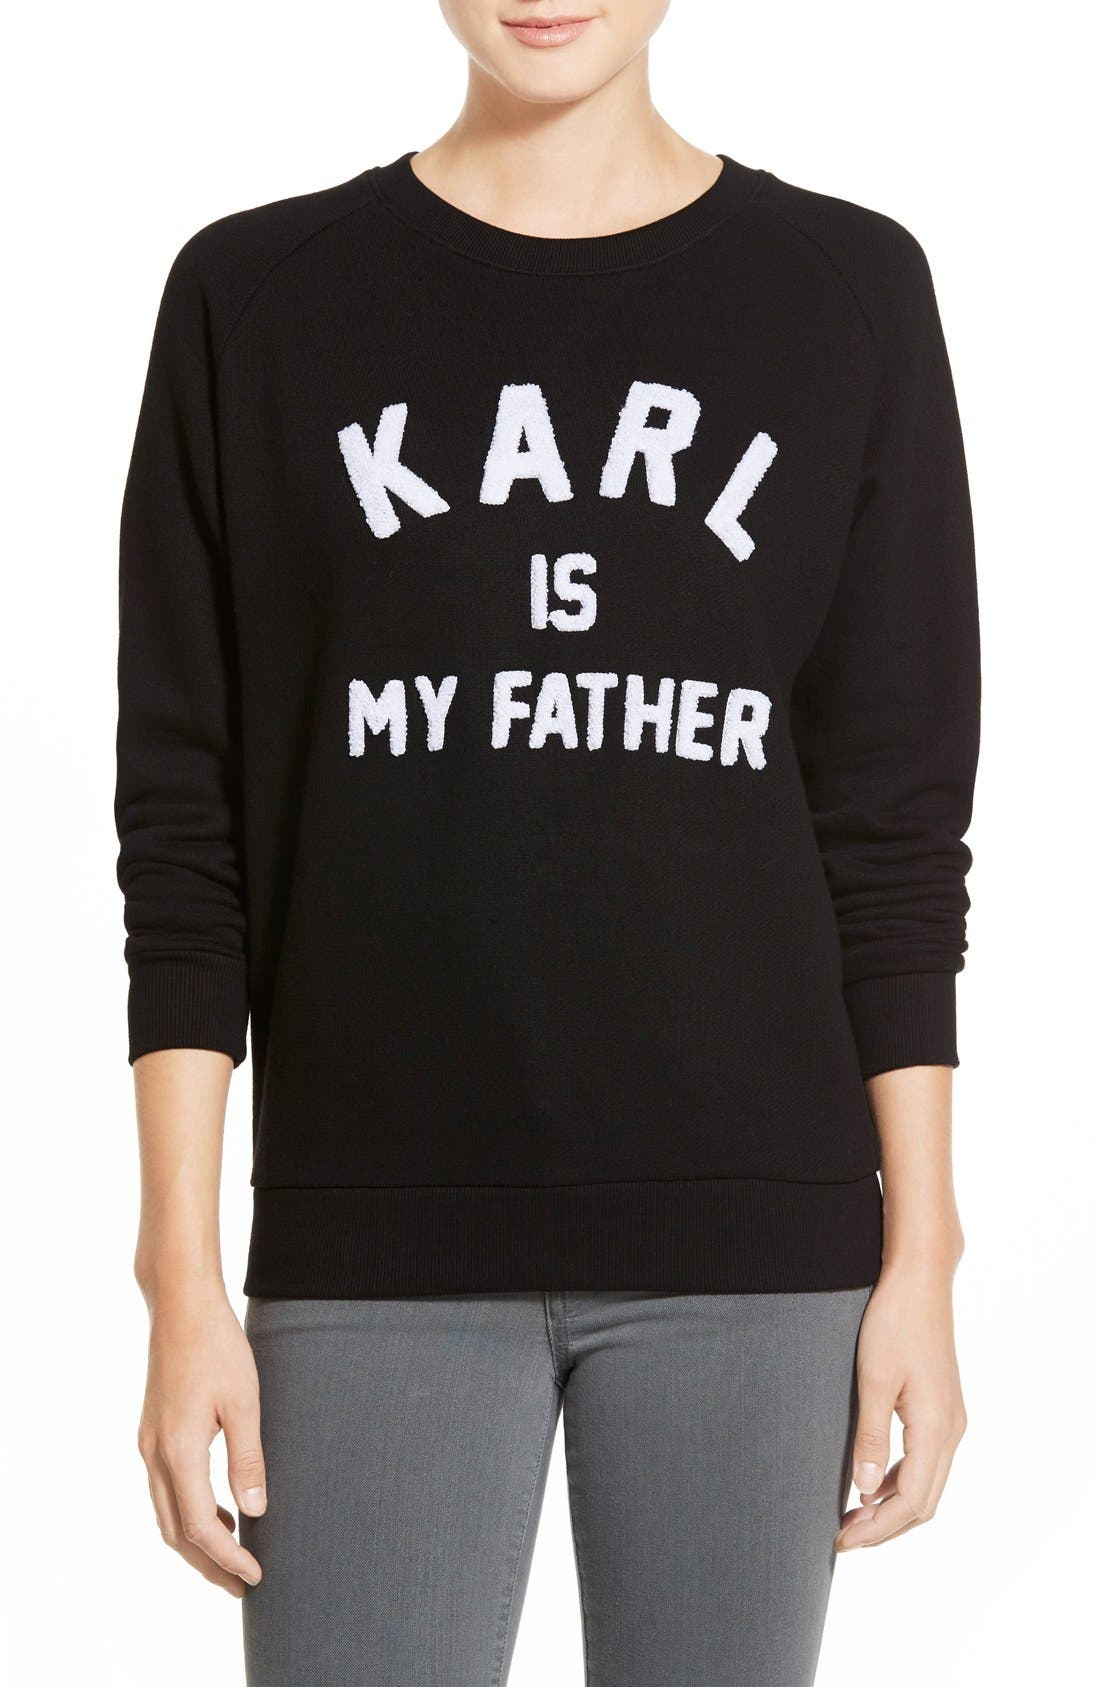 Alternate Image 1 Selected - ELEVENPARIS 'Karl is My Father' Fleece Pullover